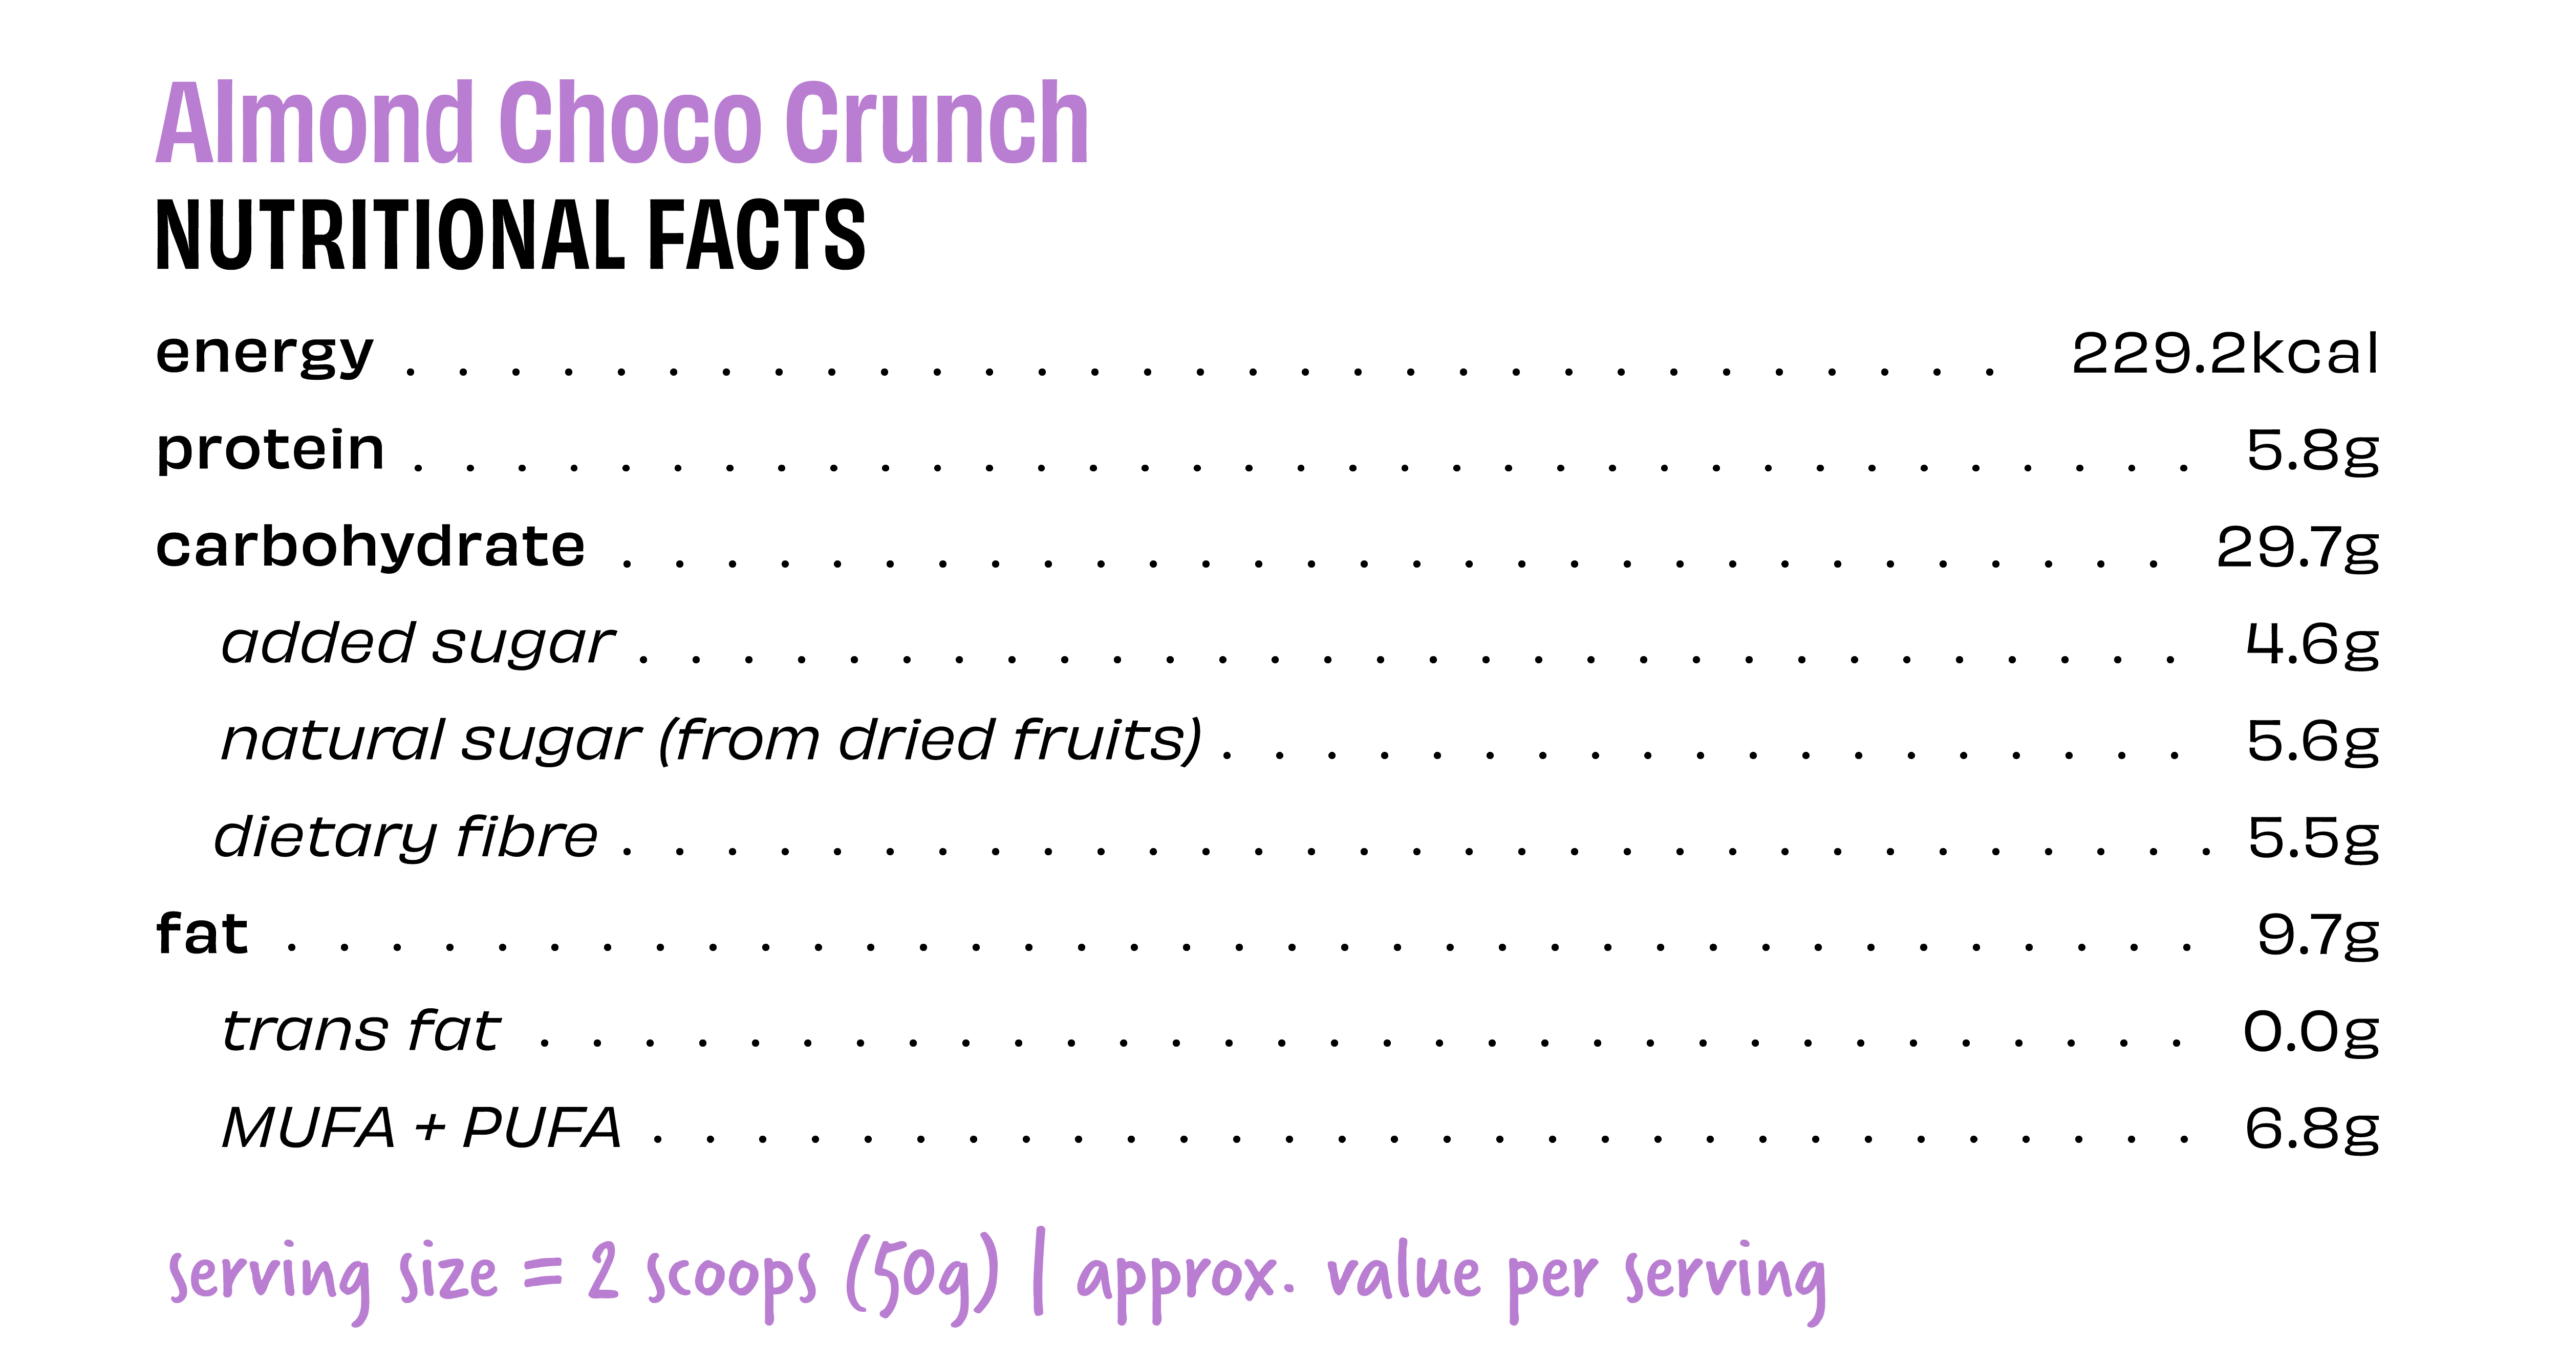 acc_acc nutritional facts